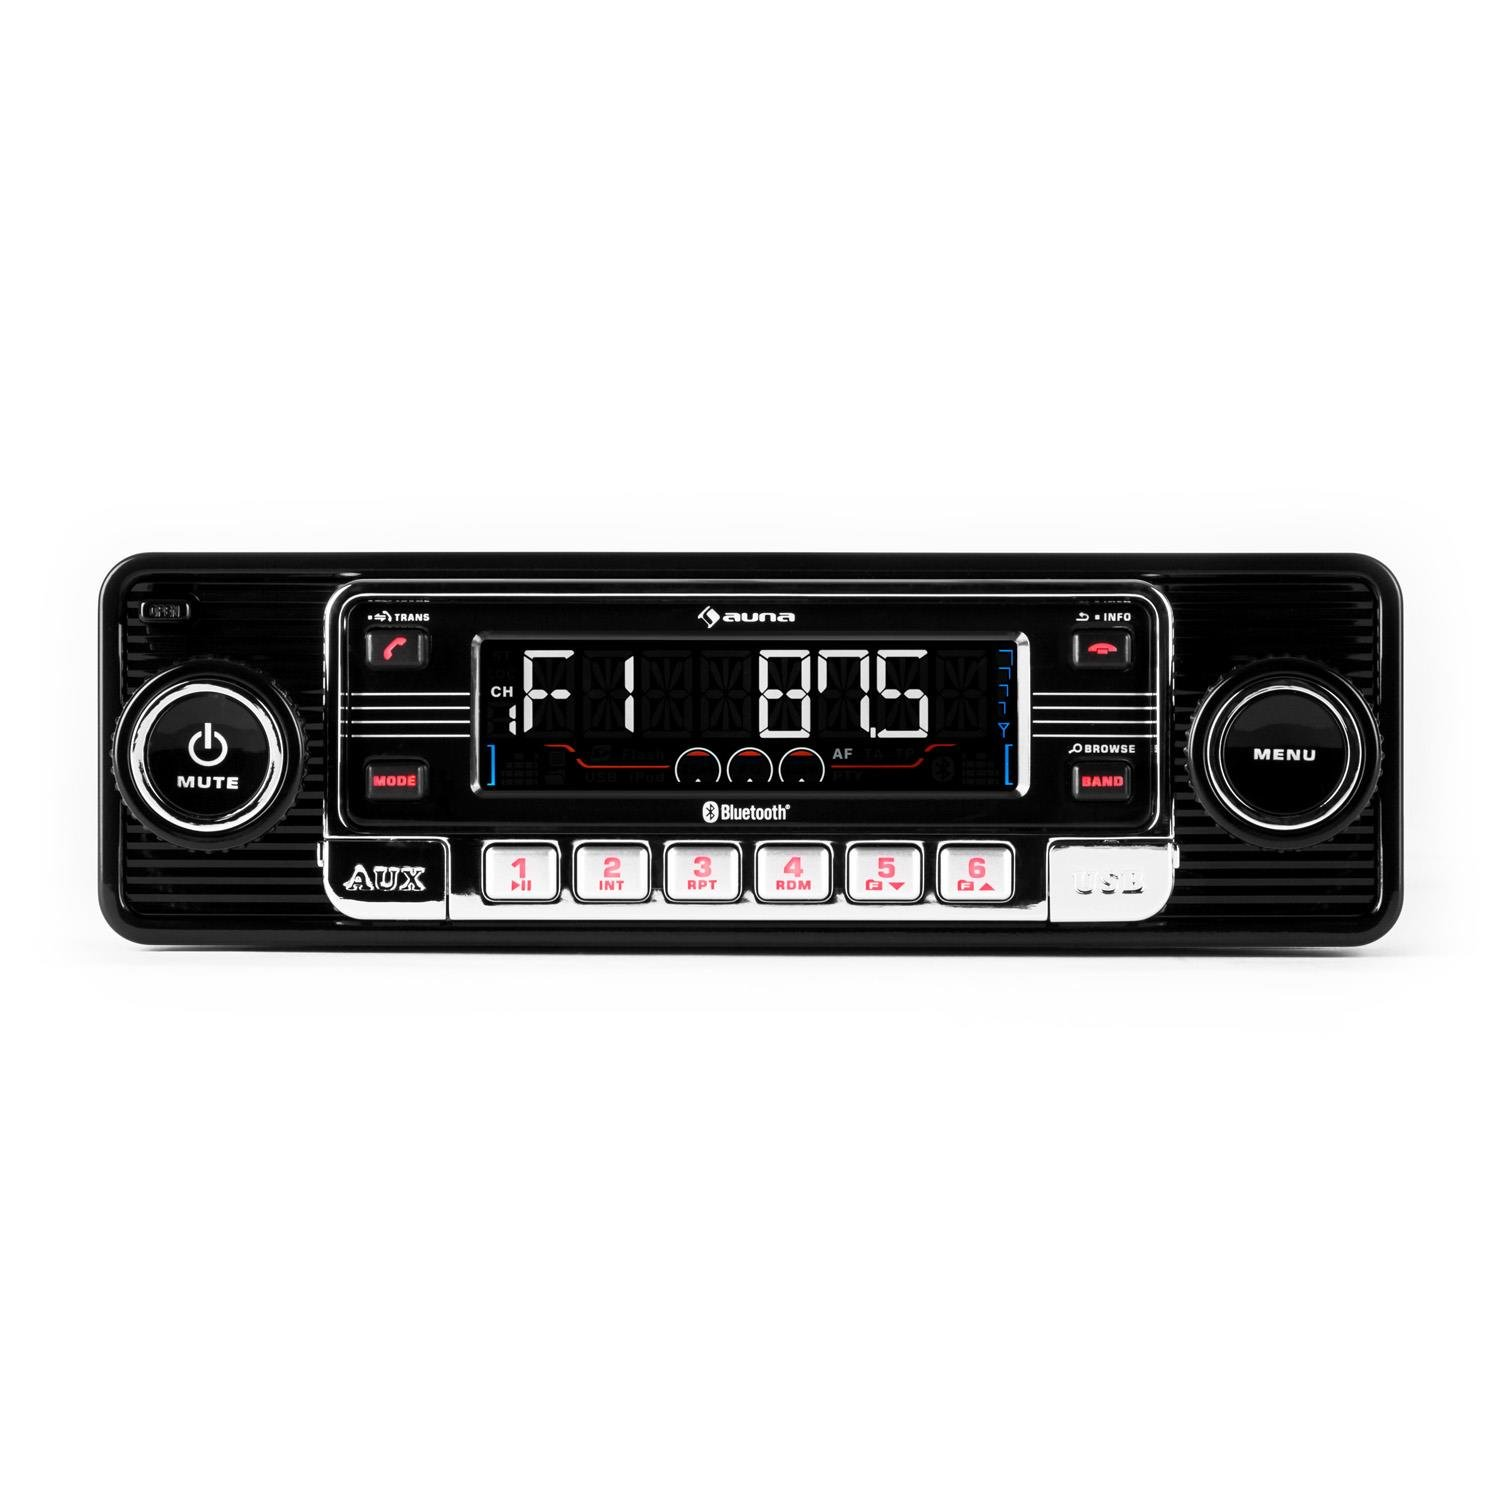 Auna RMD-Sender-One • Autoradio • Radio AM/FM • Lecteur CD • Compatible MP3 • Interface Bluetooth • Ports SD et USB • Entrée AUX • Façade Amovible • Capacité Carte mémoire: Max. 16 Go • Noir product image